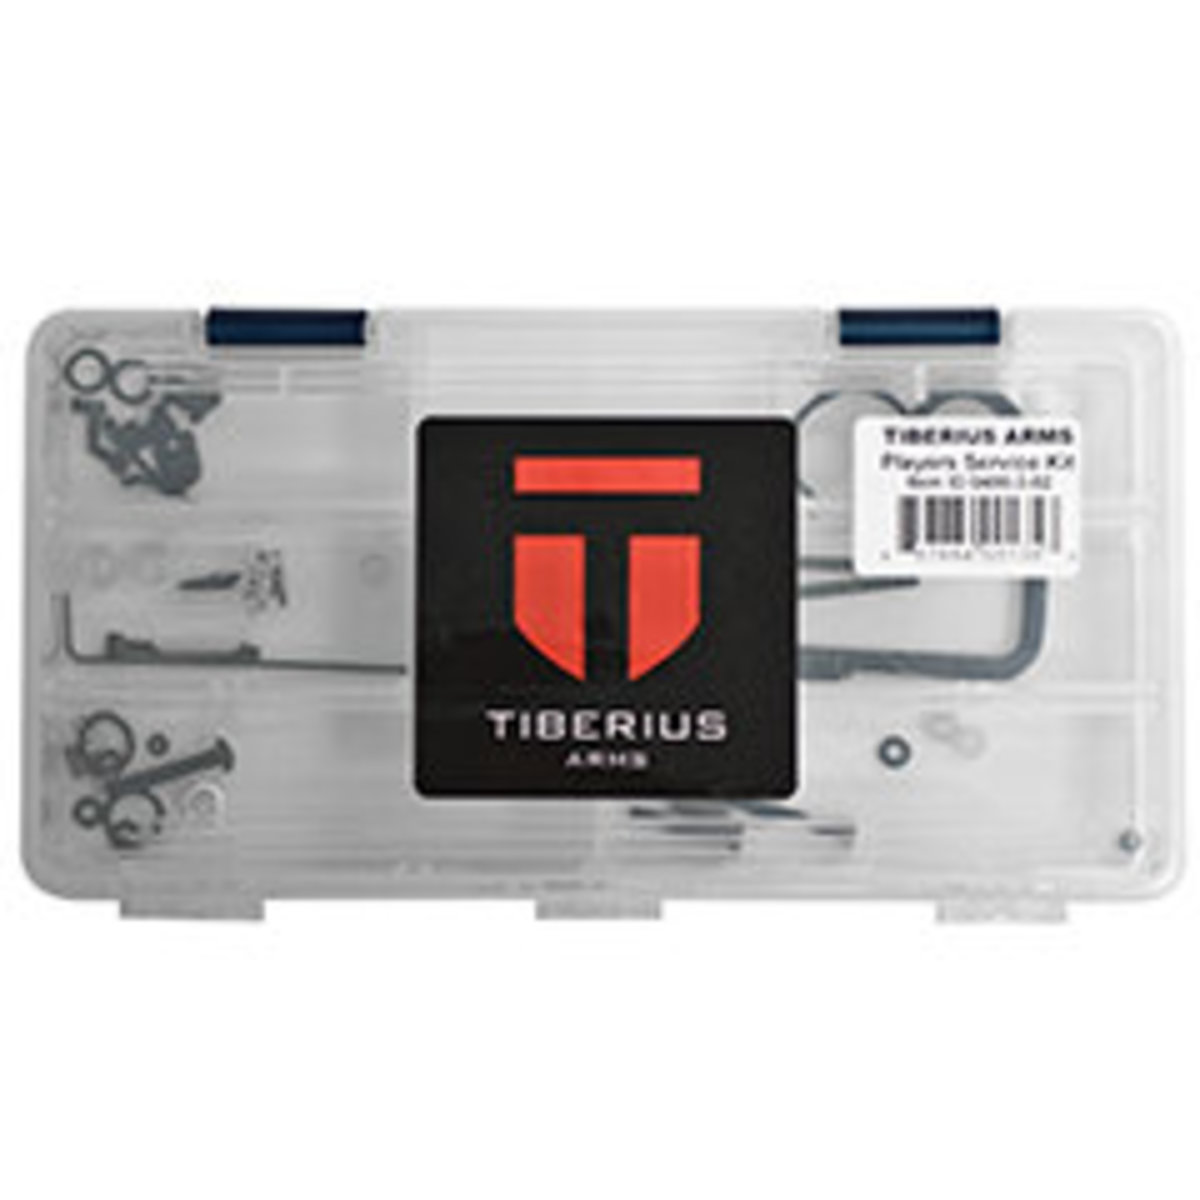 View larger image of Tiberius FS 8.1 & 9.1 Player Service Gun Parts Kit